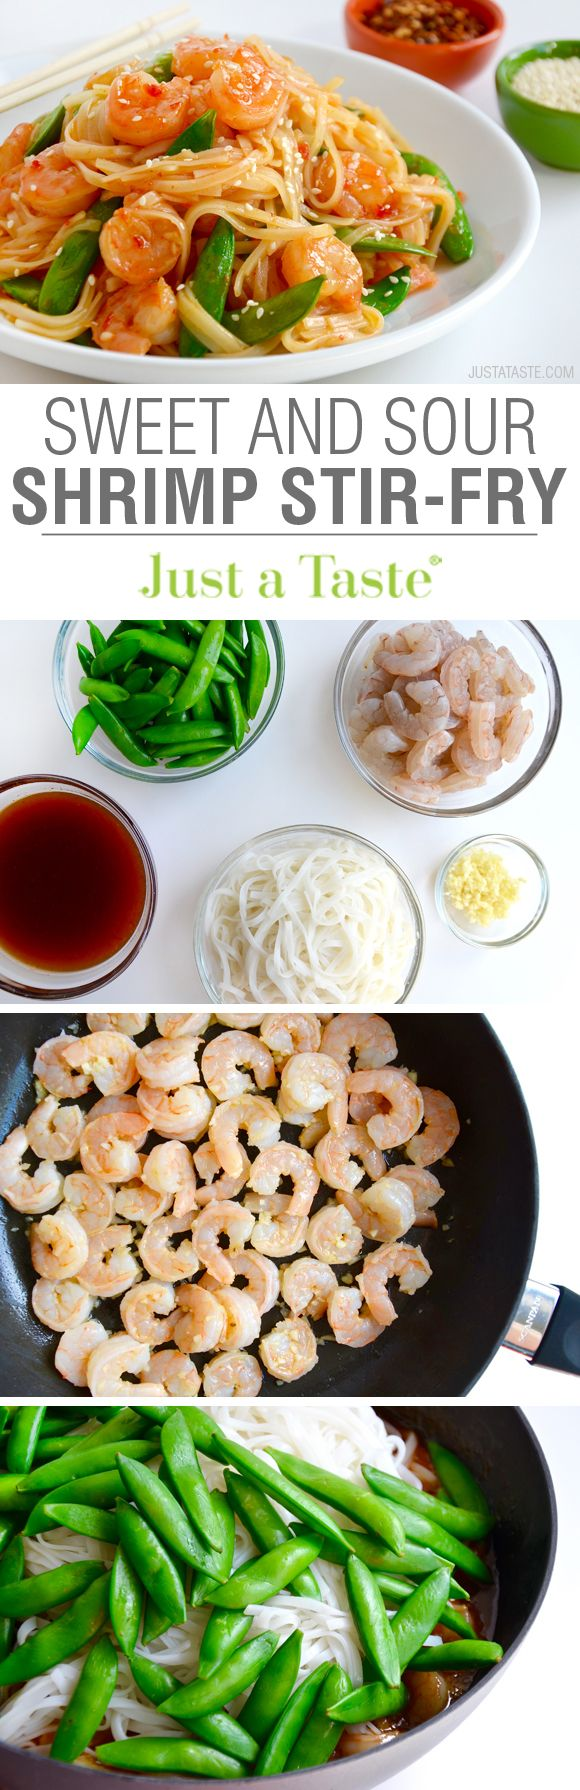 20-Minute Sweet and Sour Shrimp Stir-Fry recipe via justataste.com